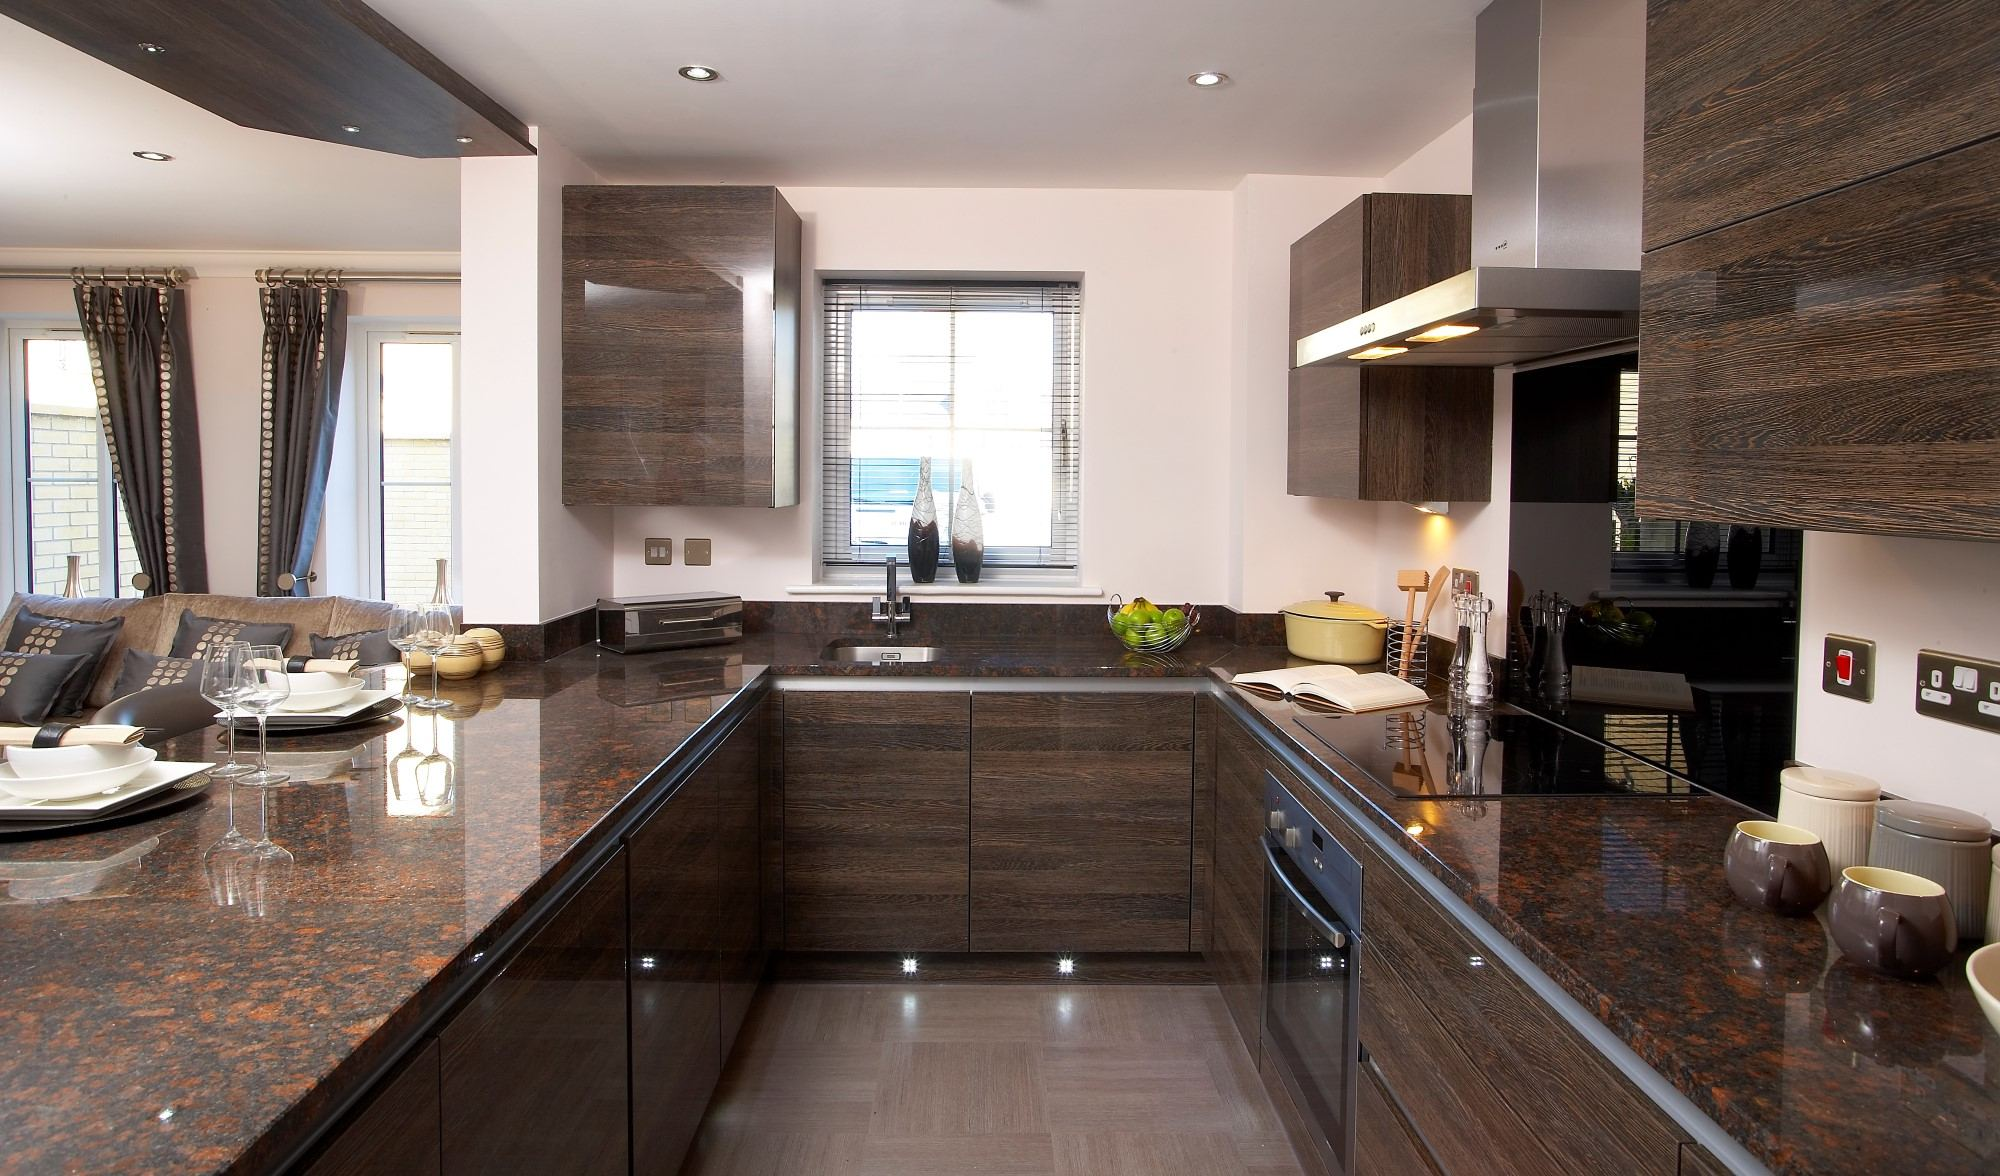 Give Perfection to Your Kitchen With Superior Quality Worktops in London